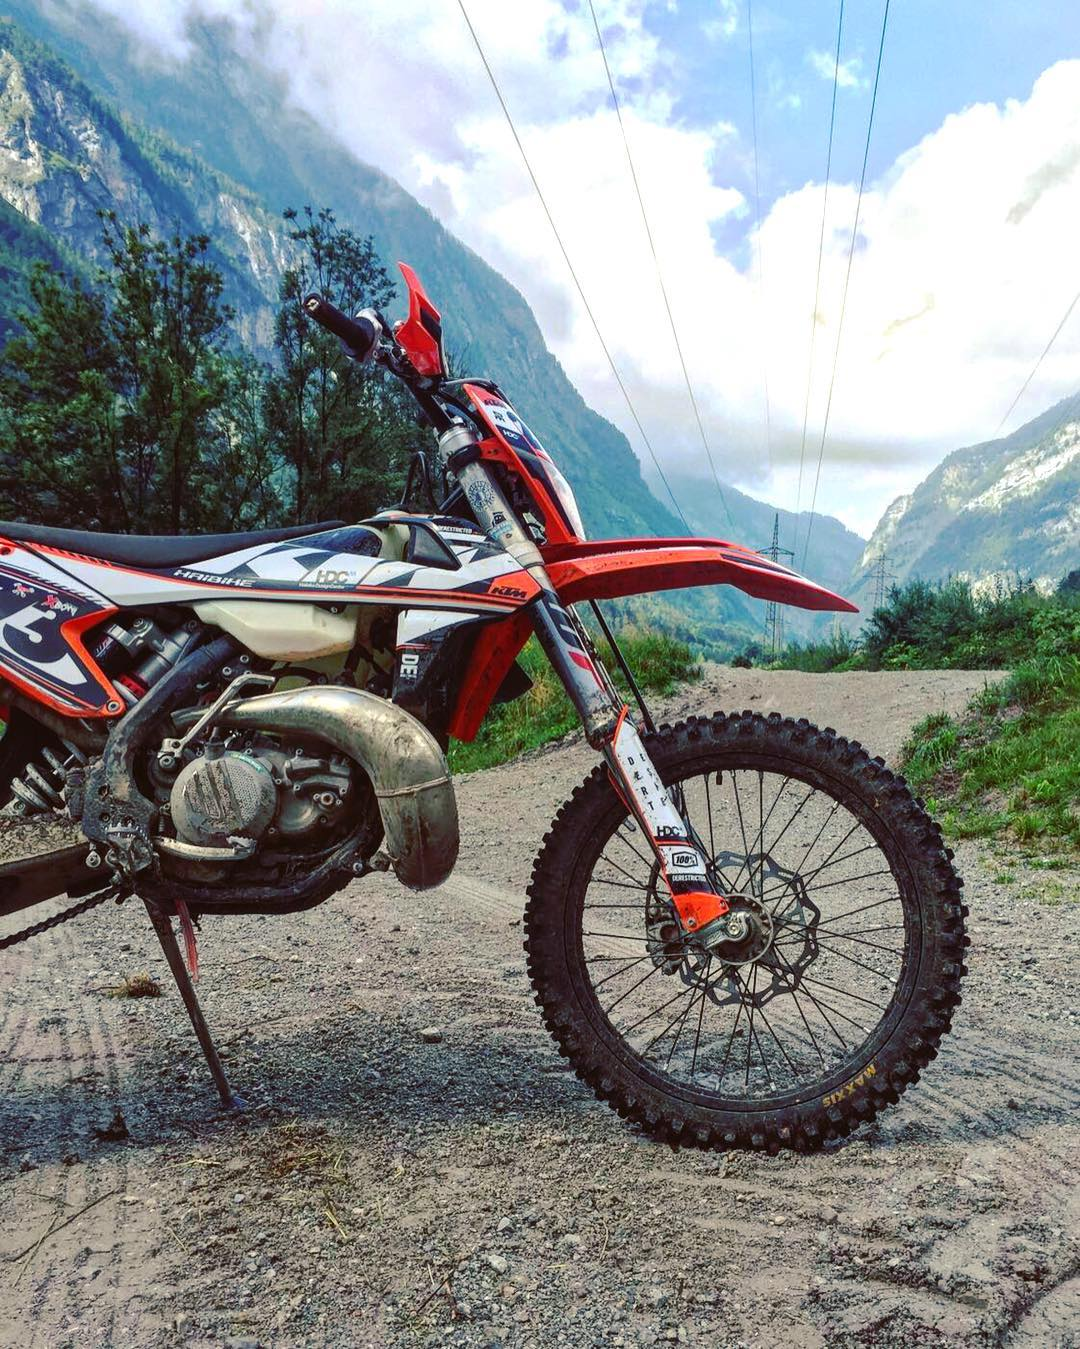 Public holiday today in Bavaria and Austria. #KTM #300exc